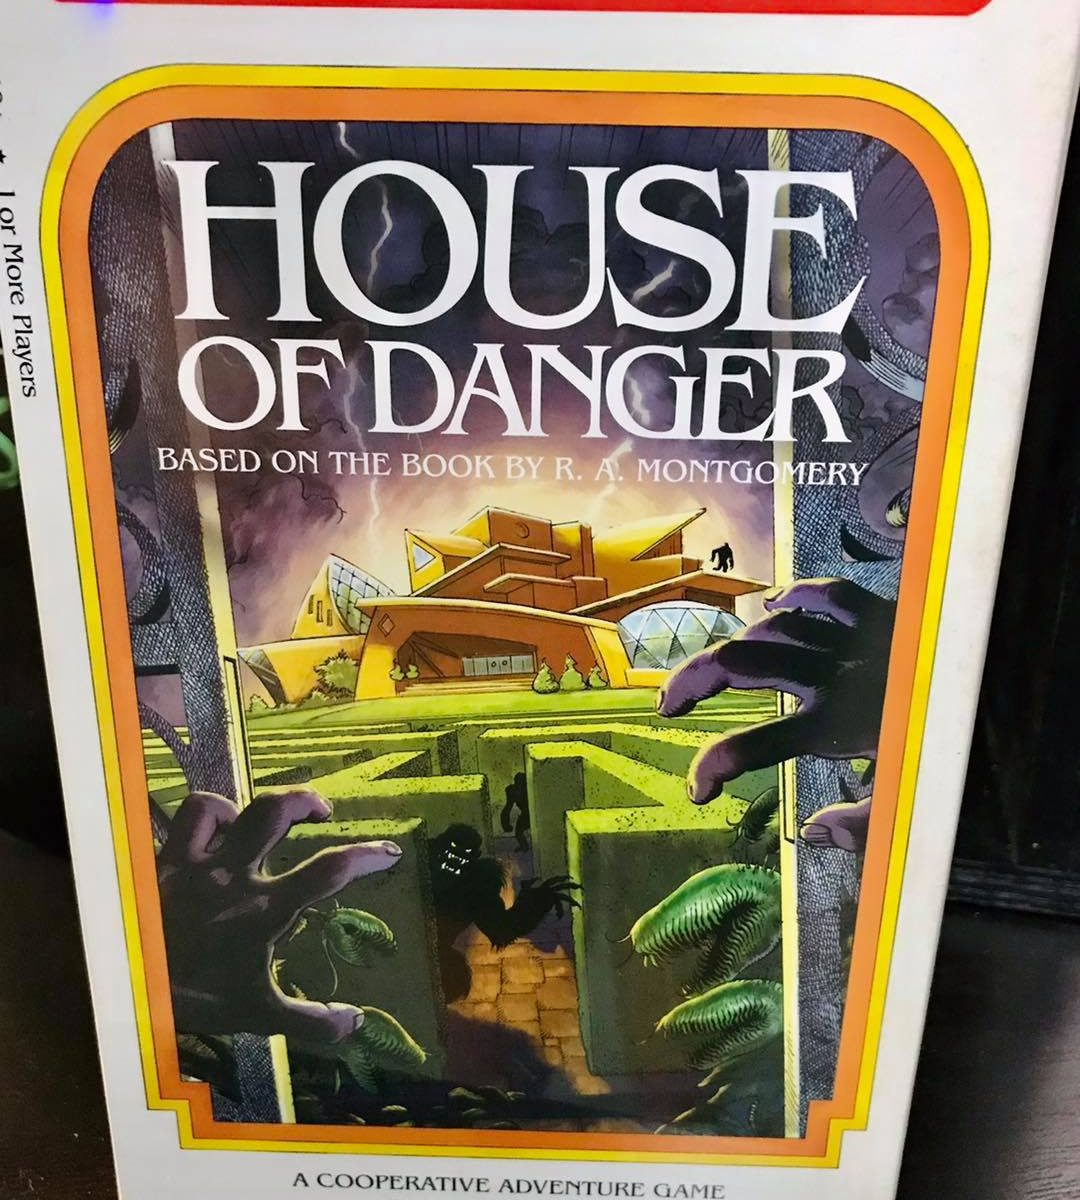 choose your own adventure game house of danger at battlehops brewing katy tx board game review